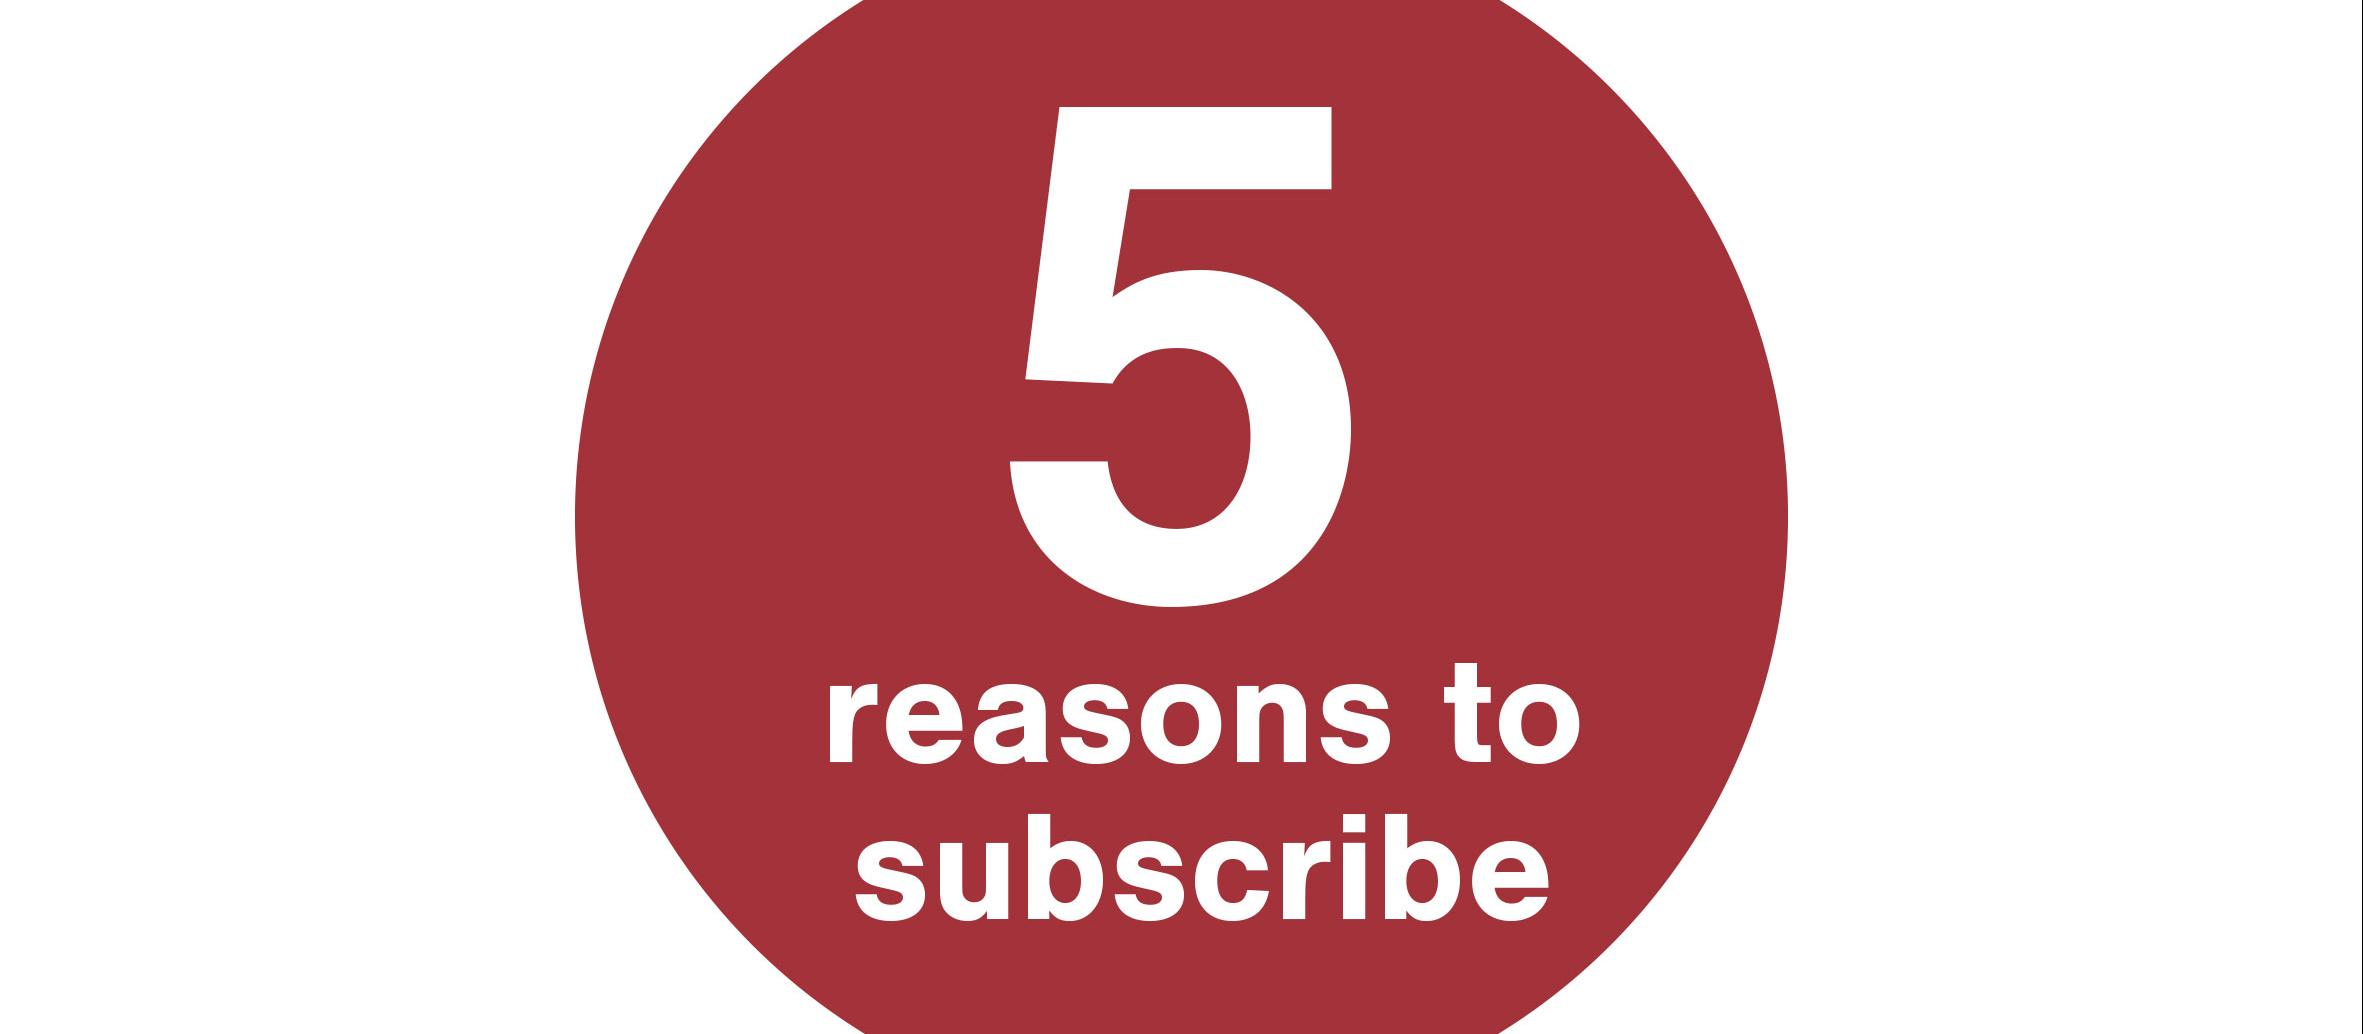 5 reasons to subscribe